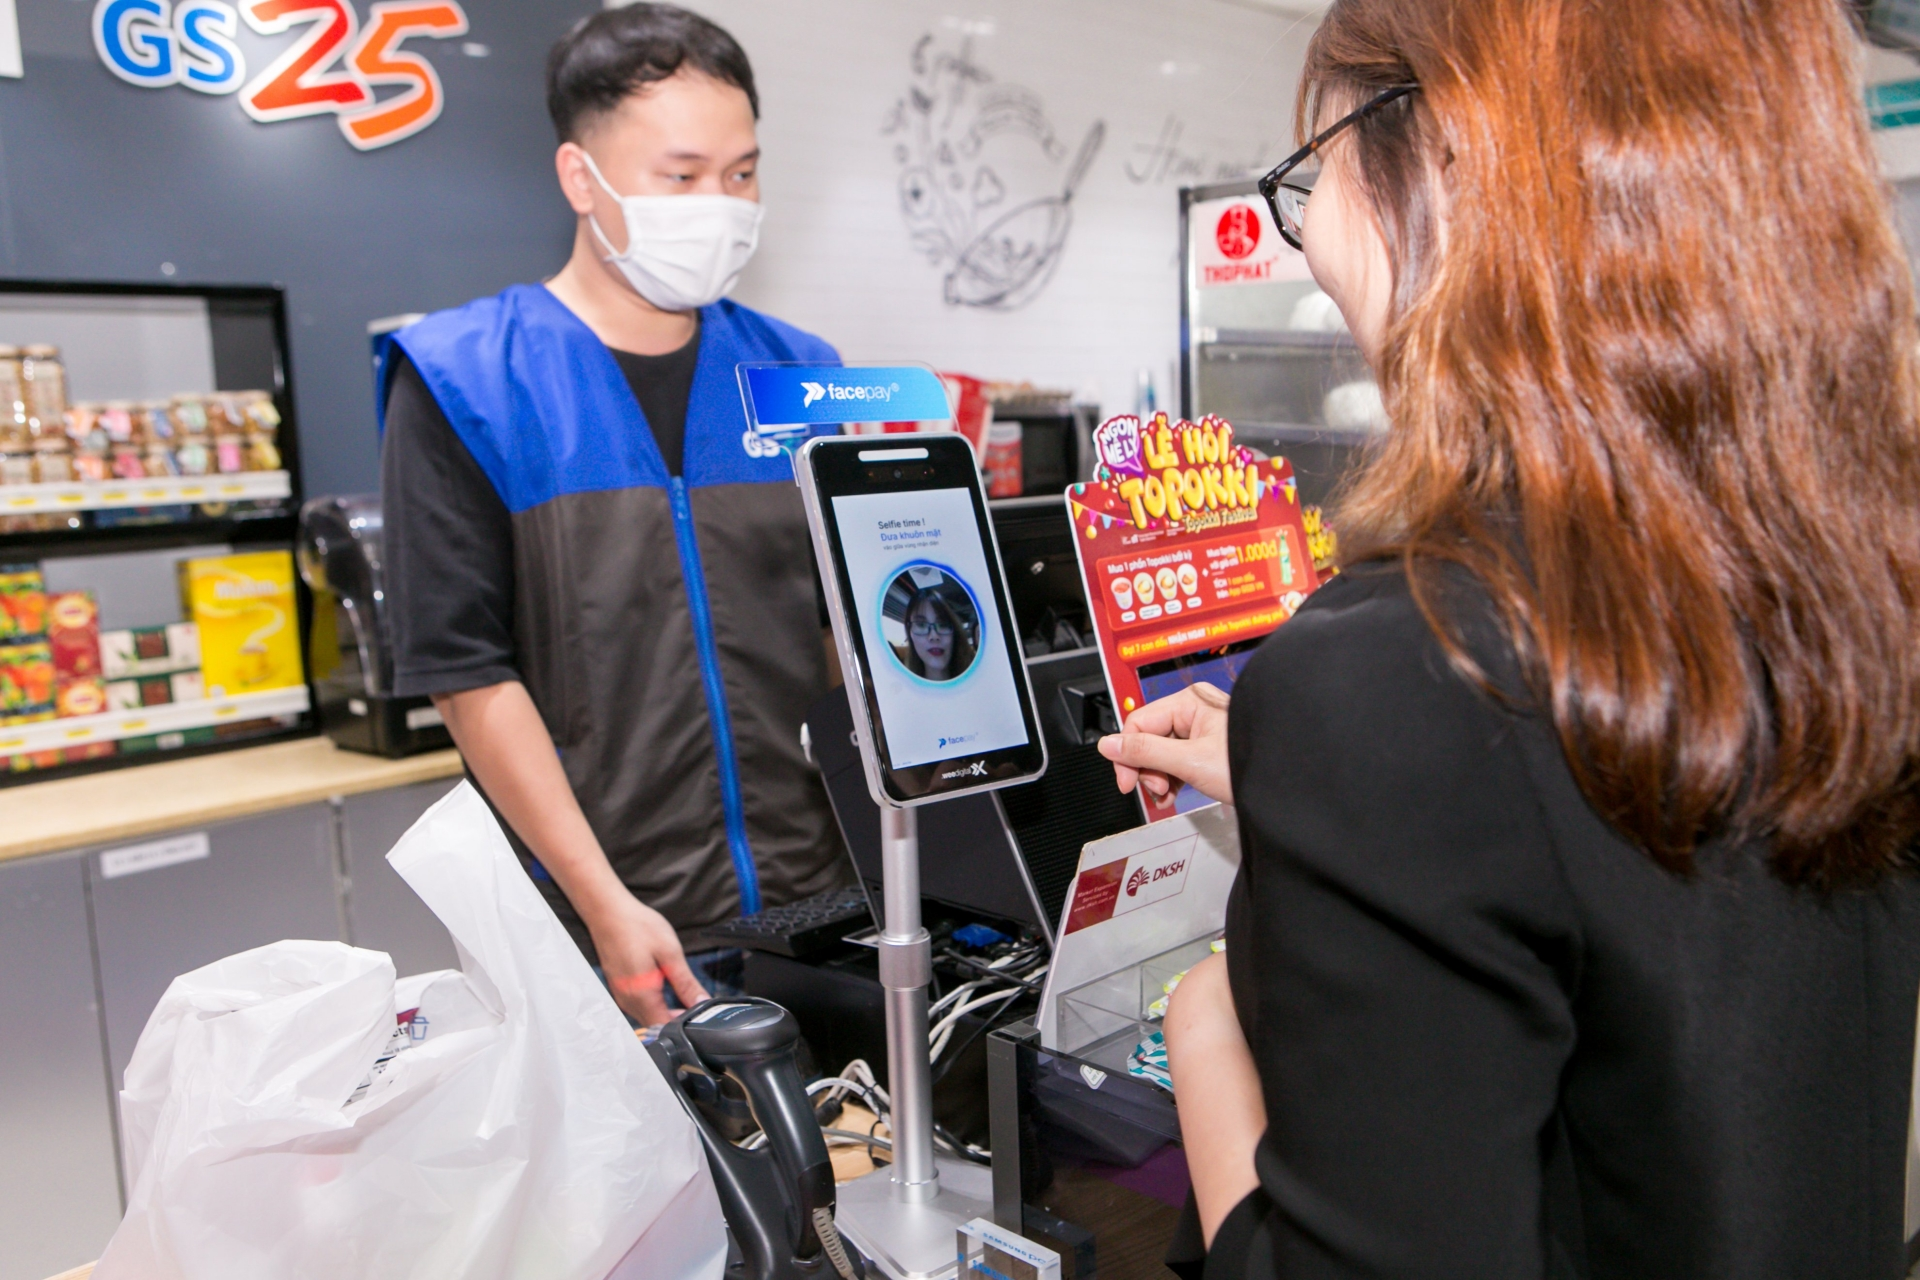 wee digital to launch facial payment in convenience store chain gs25